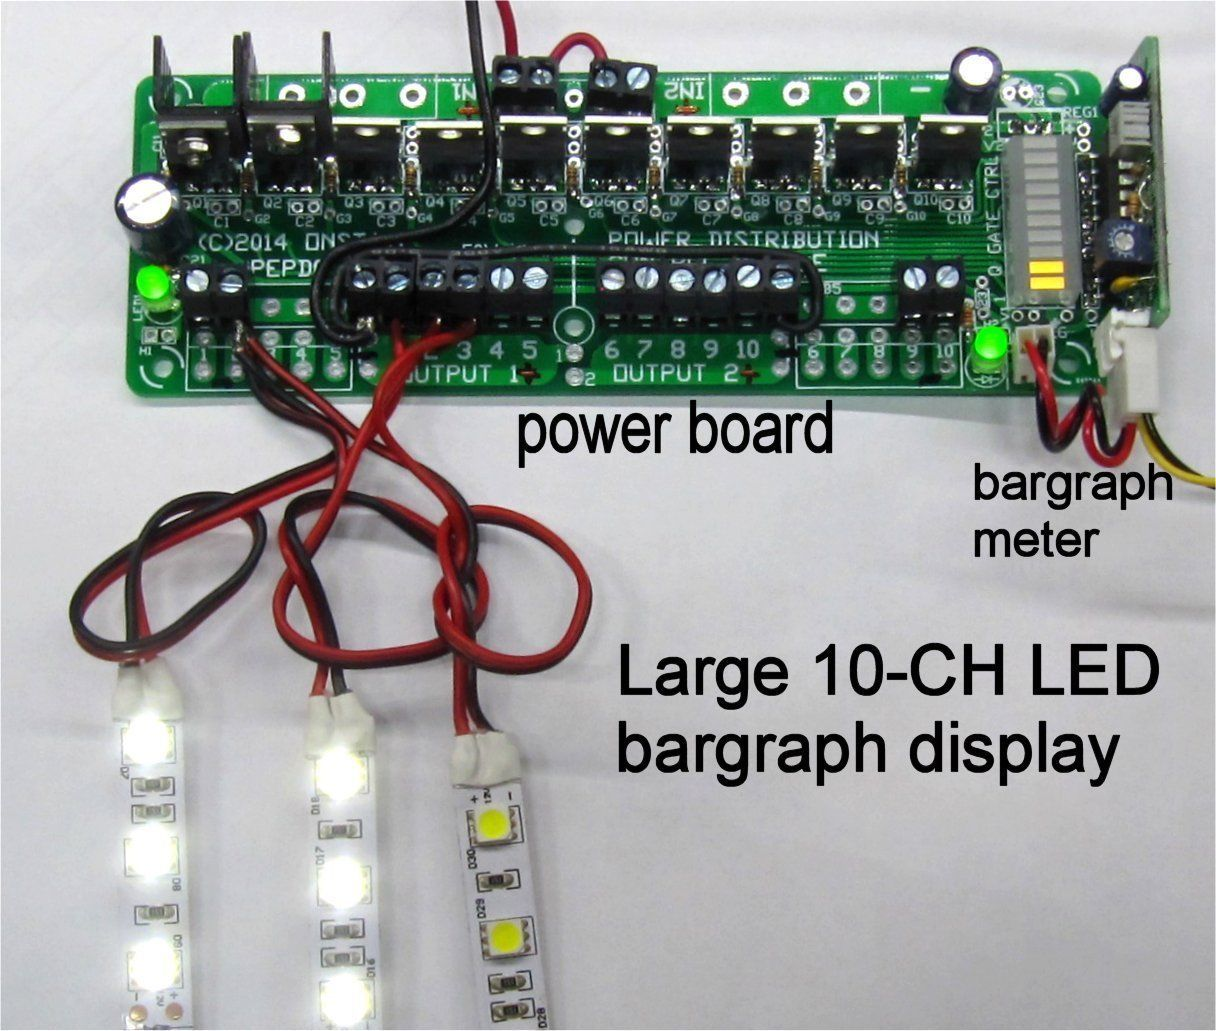 10 Led Bargraph Display Meter Pcb Diy Lm3914 Vu Lm3915 Audio Sound Need Working Schematic Page 2 Diyaudio Op Amp Music Volt In Business Industrial Electrical Test Equipment